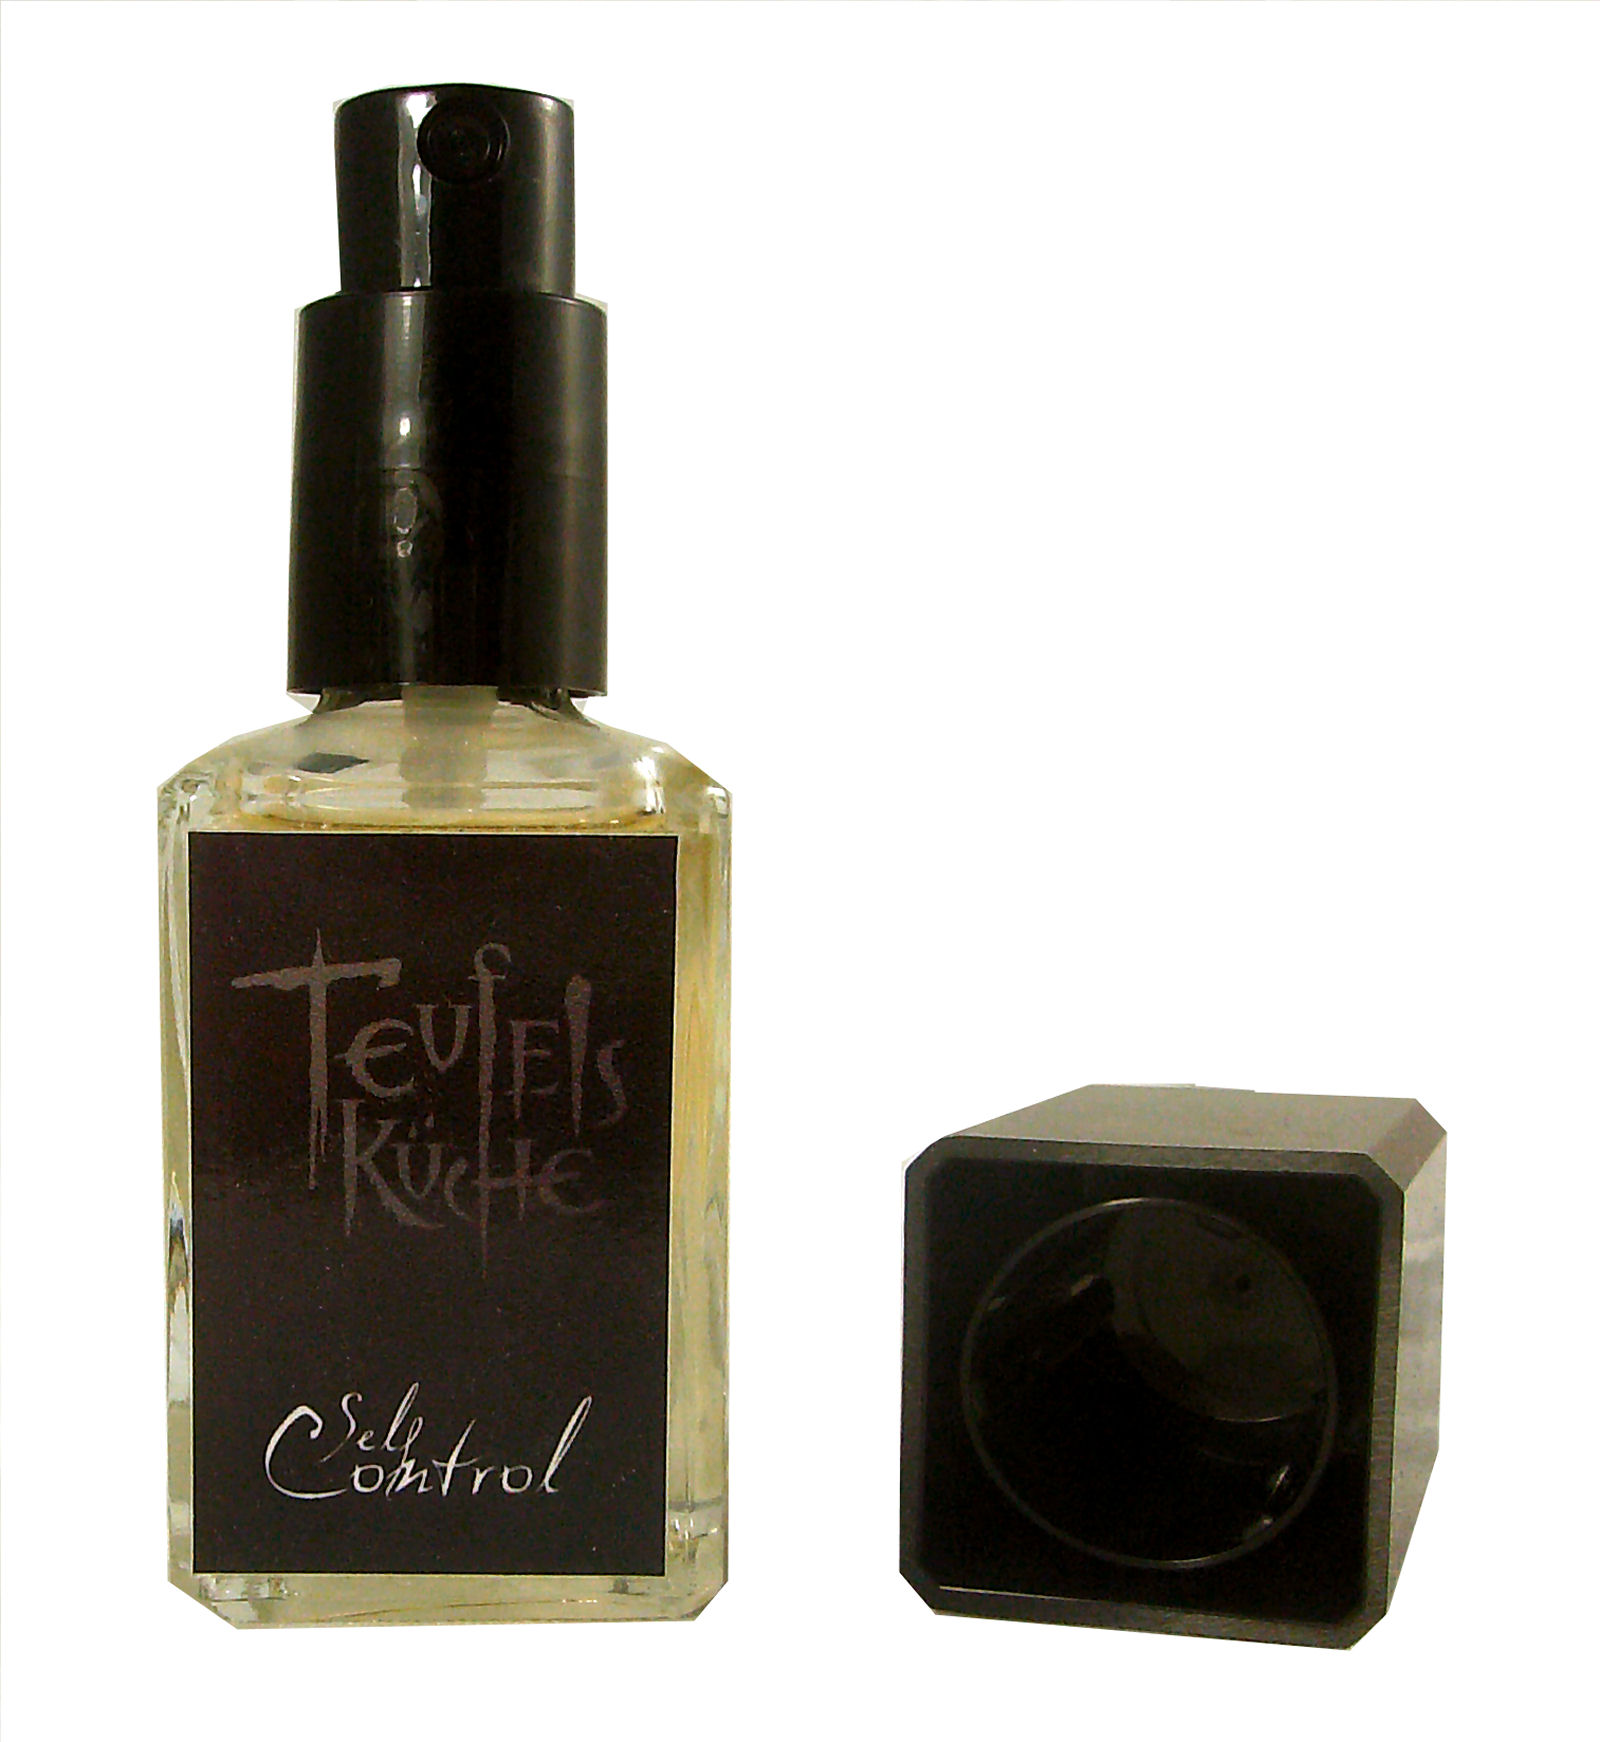 Eau de Parfüm, Self Control, 25 ml